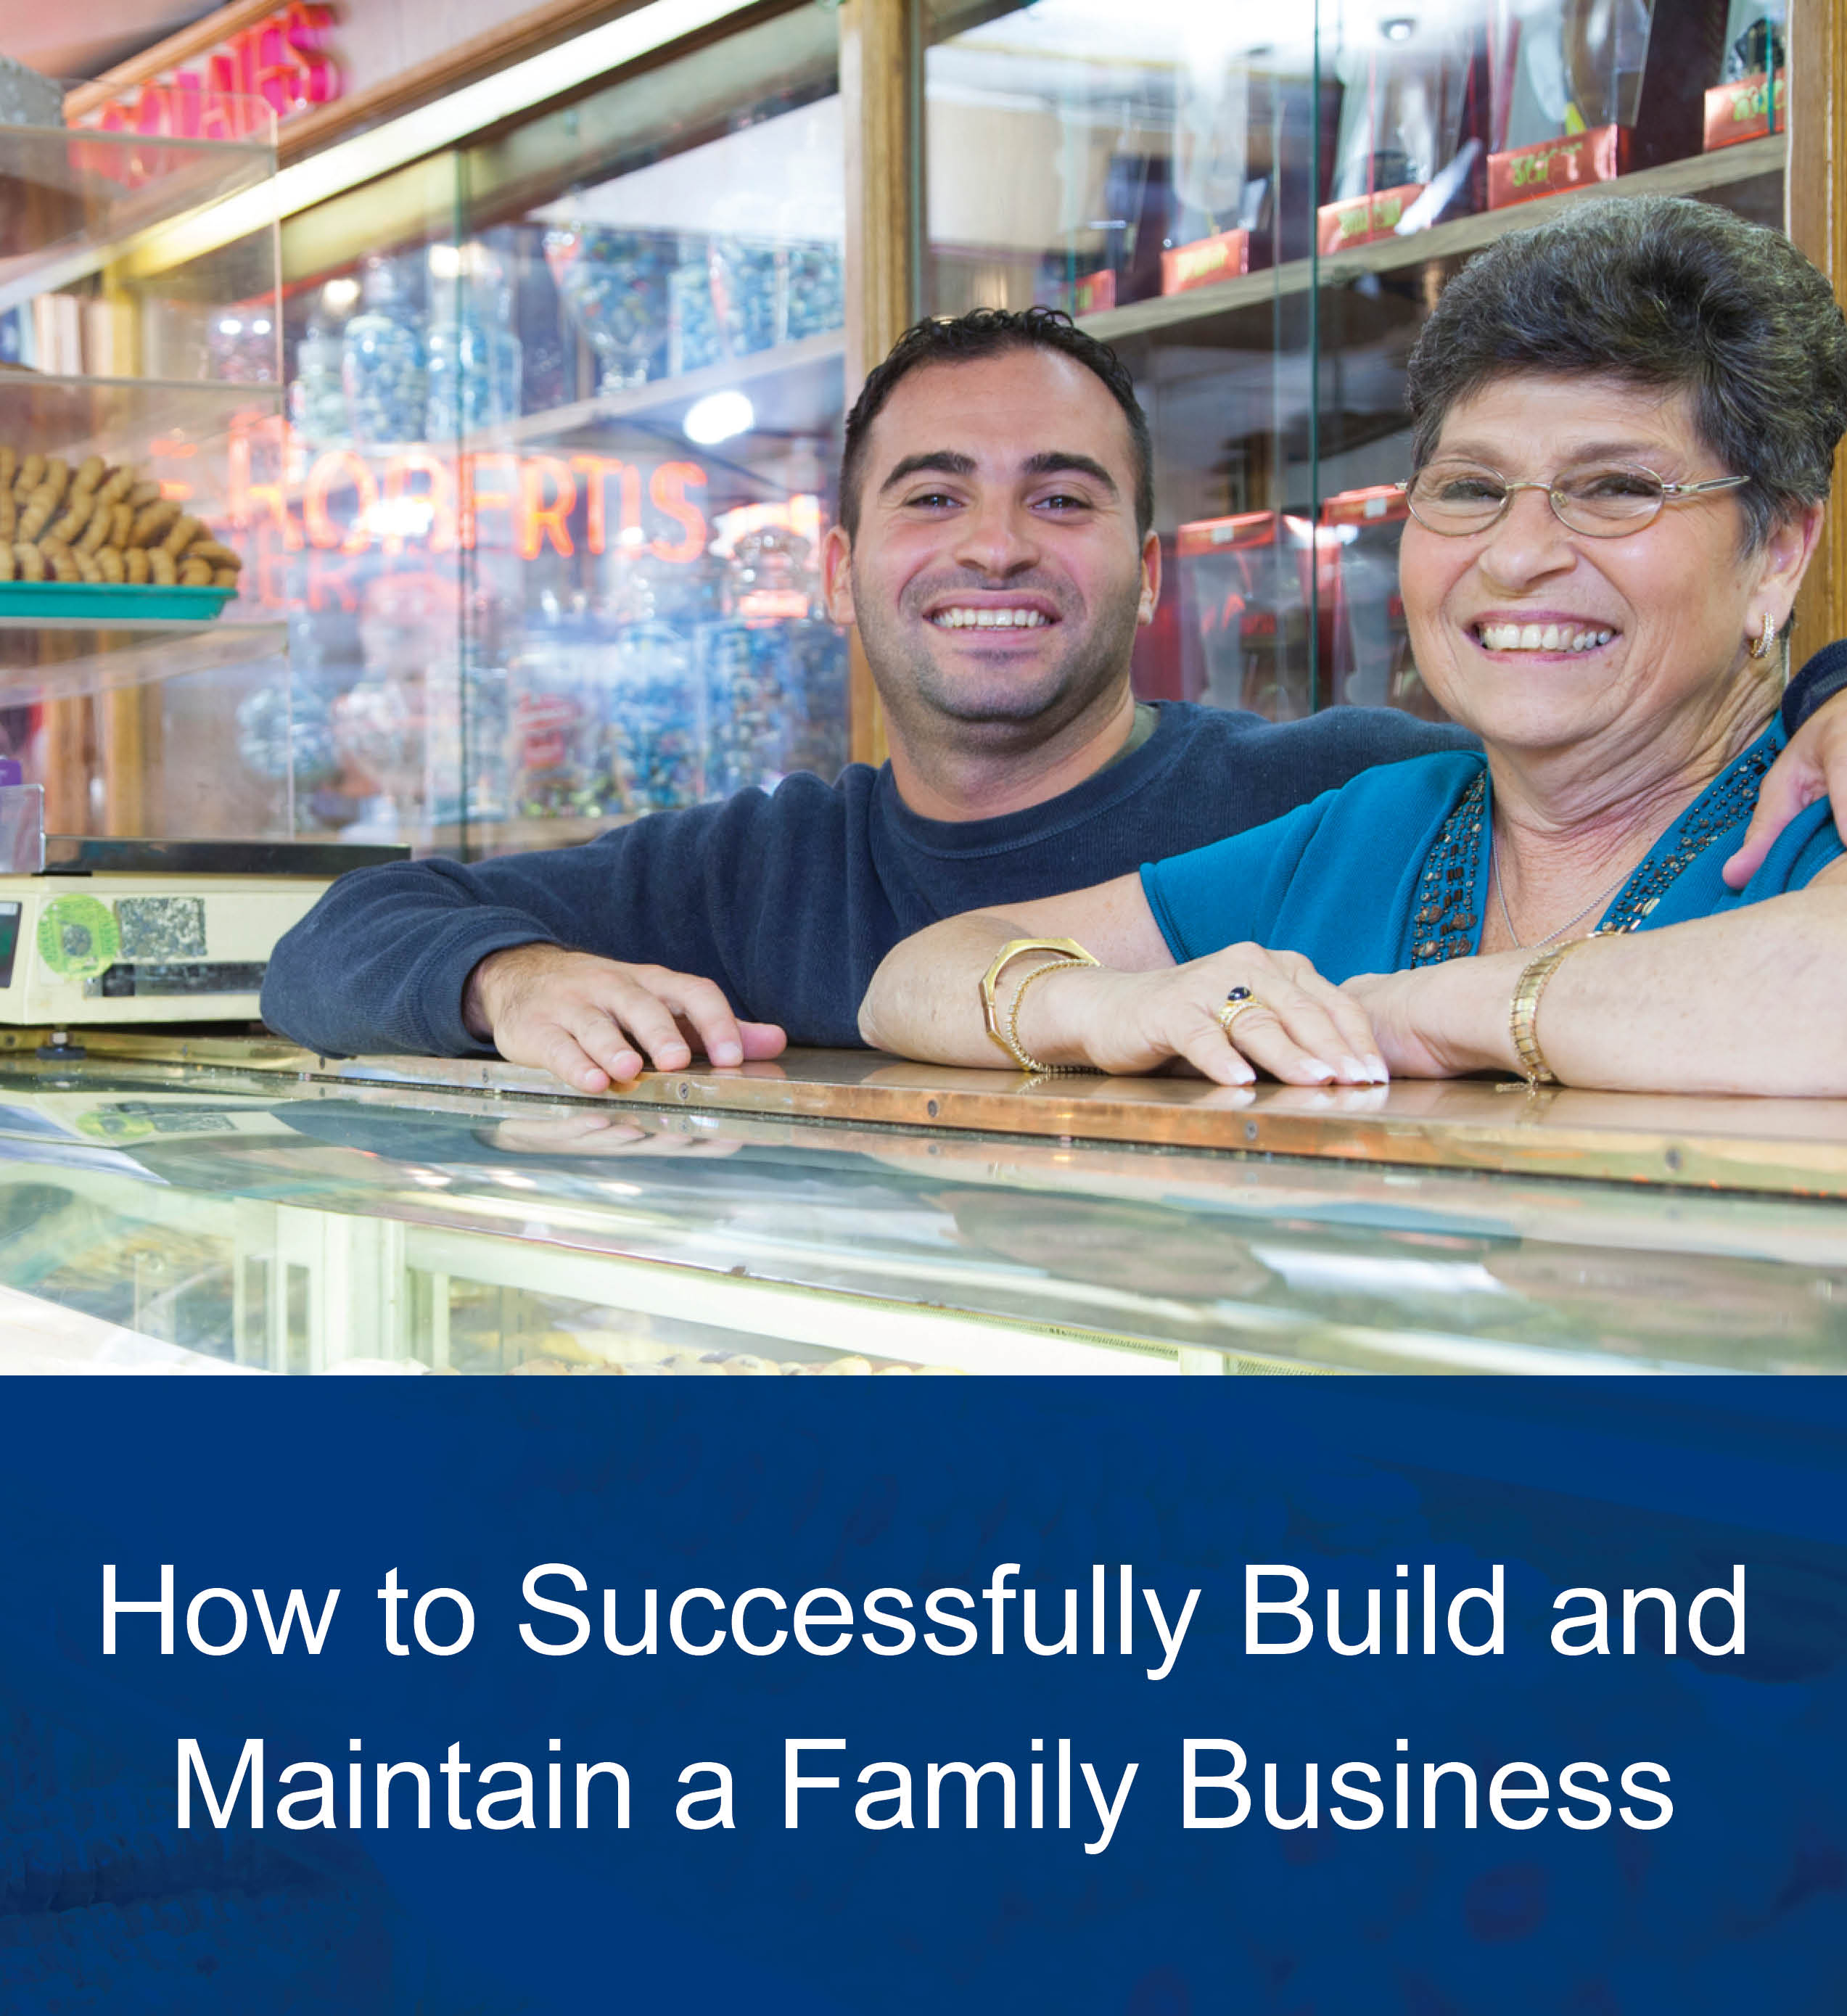 How to Successfully Build and Maintain a Family Business thumbnail image